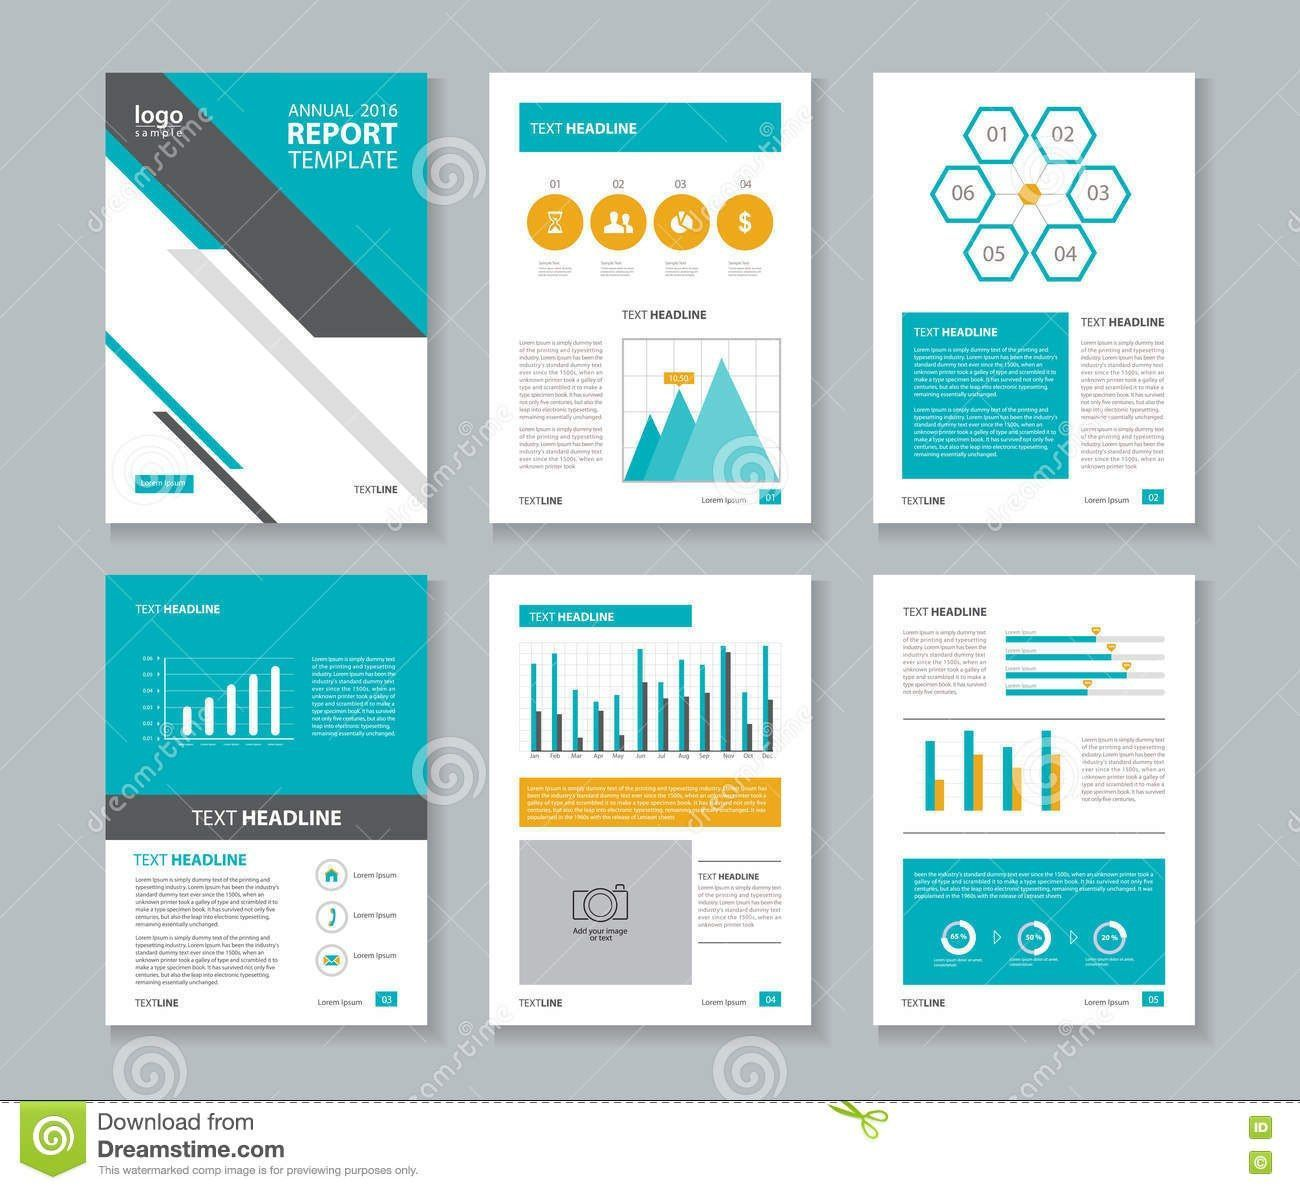 001 Stupendou Annual Report Template Word Photo  Performance Rbi Format Ngo In DocFull